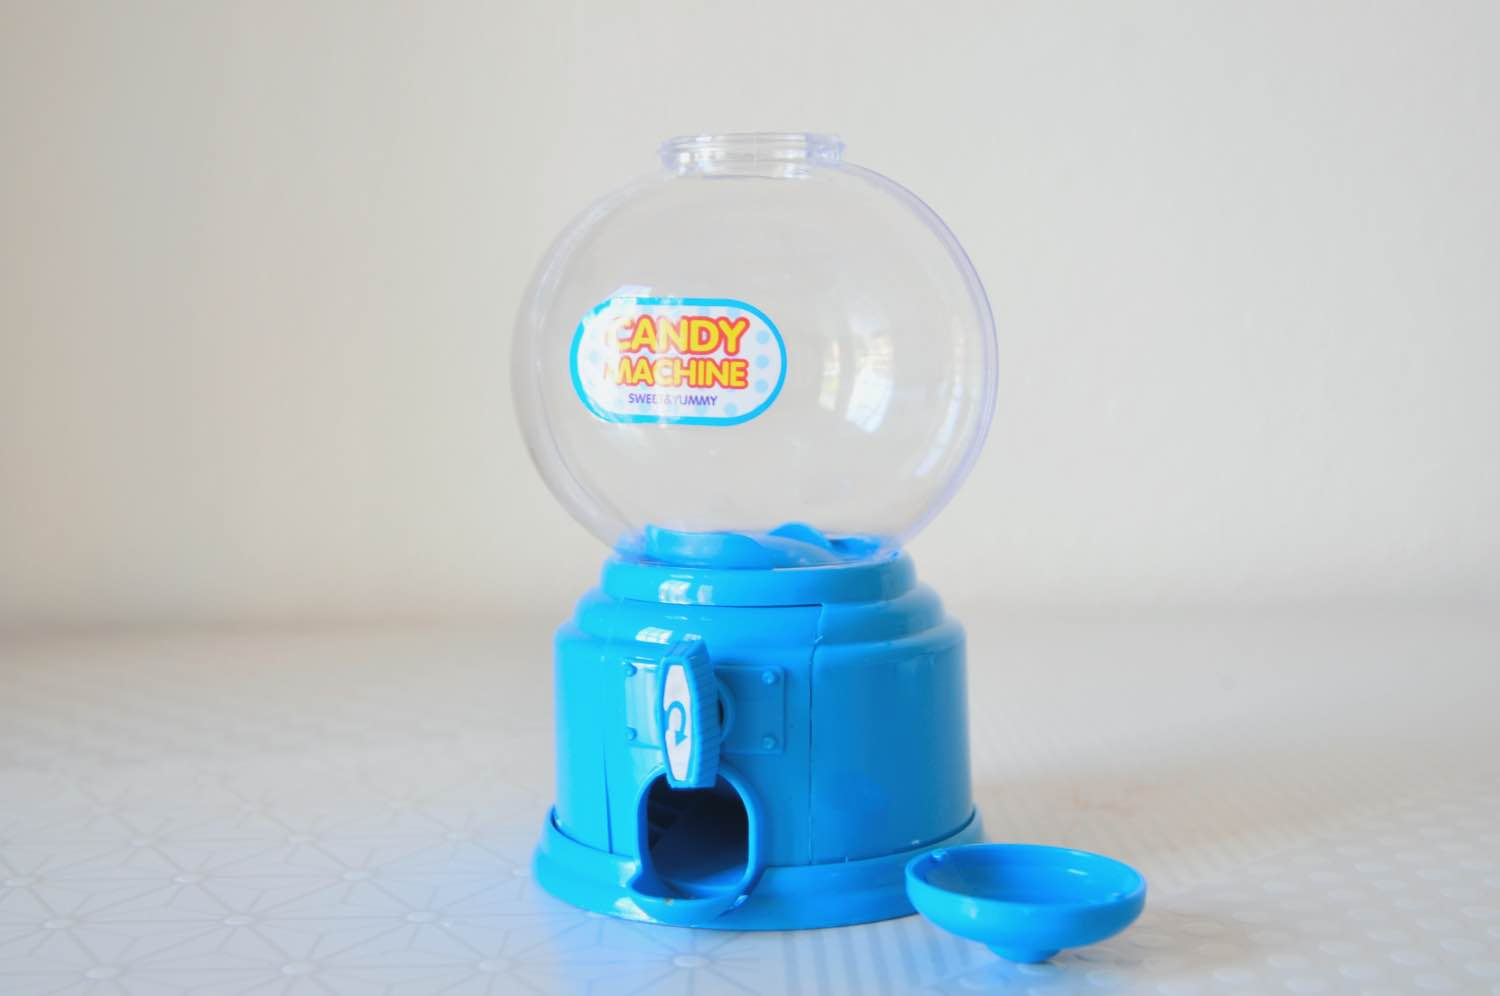 open the gumball machine to make a snow globe